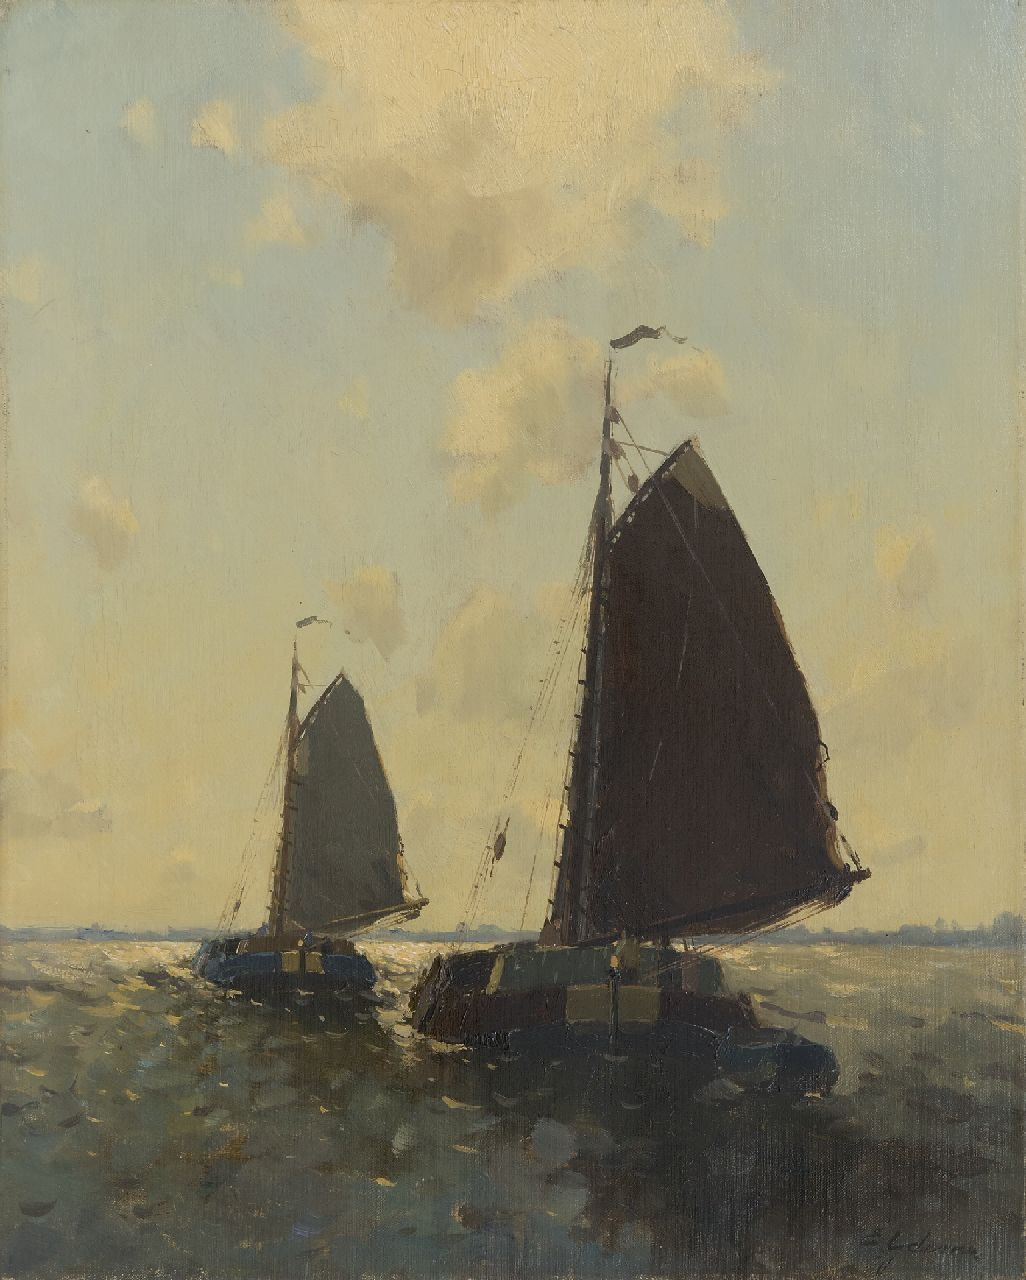 Ydema E.  | Egnatius Ydema | Paintings offered for sale | Barges sailing on the lake, oil on canvas 50.3 x 40.4 cm, signed l.r.